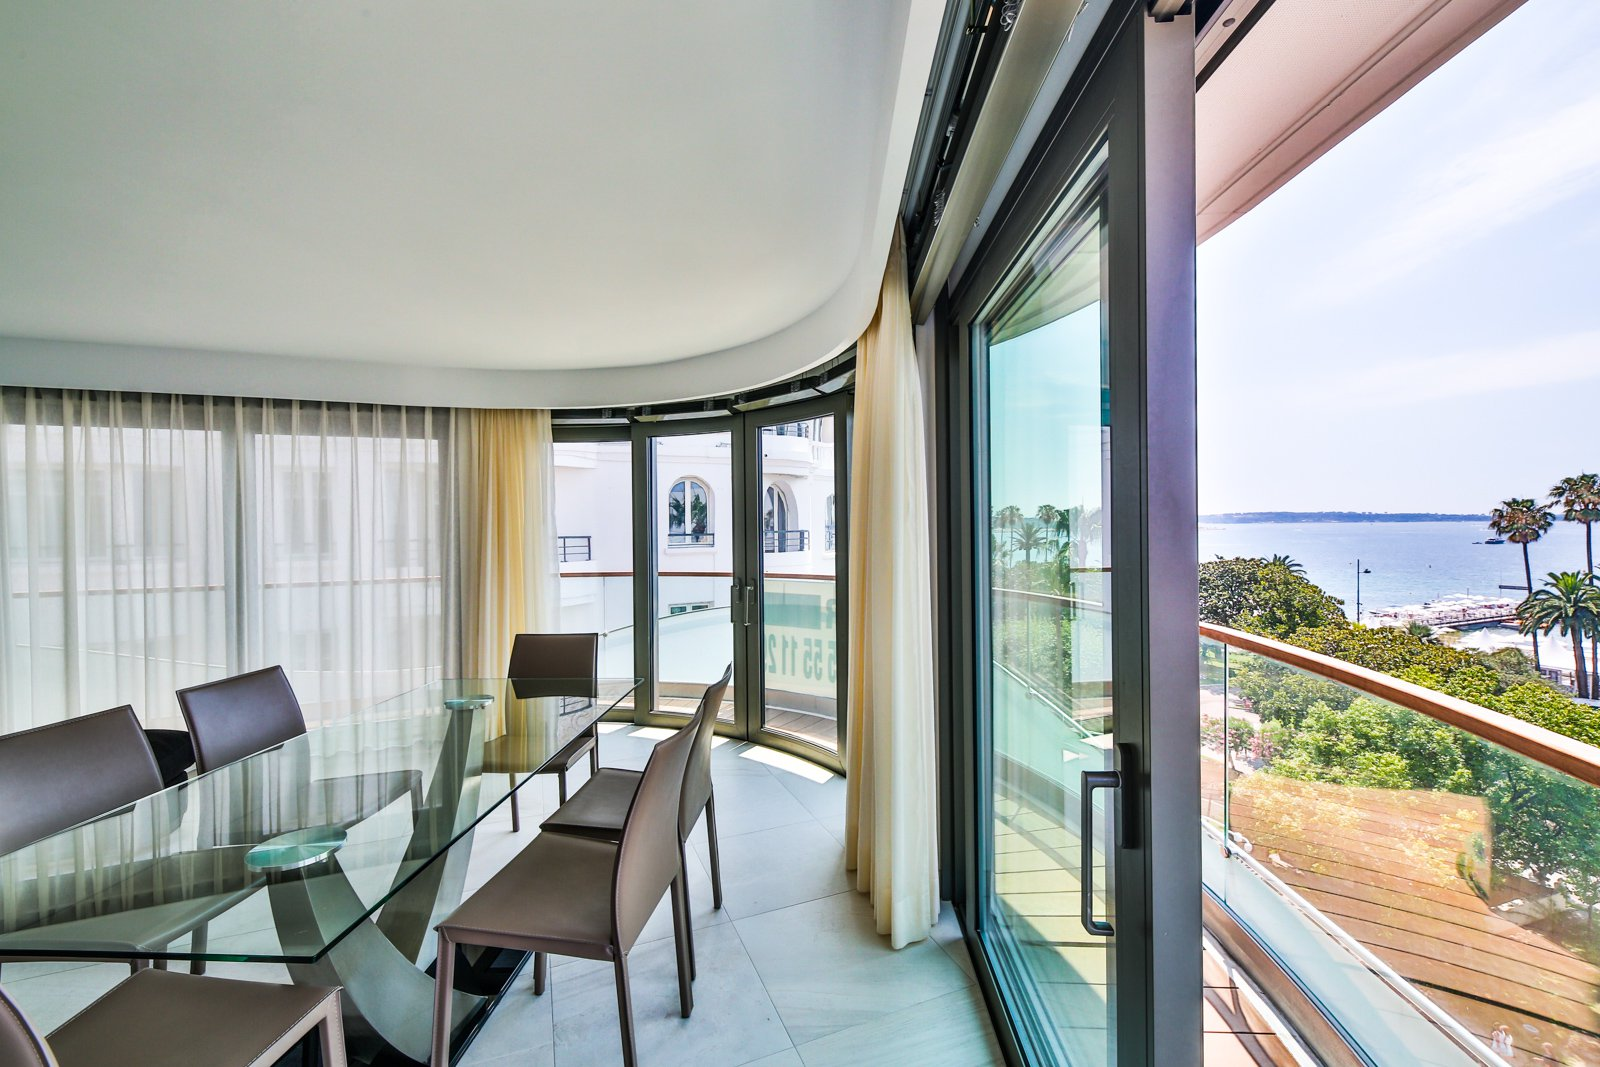 Seasonal rental Apartment - Cannes 7 Croisette - N°602